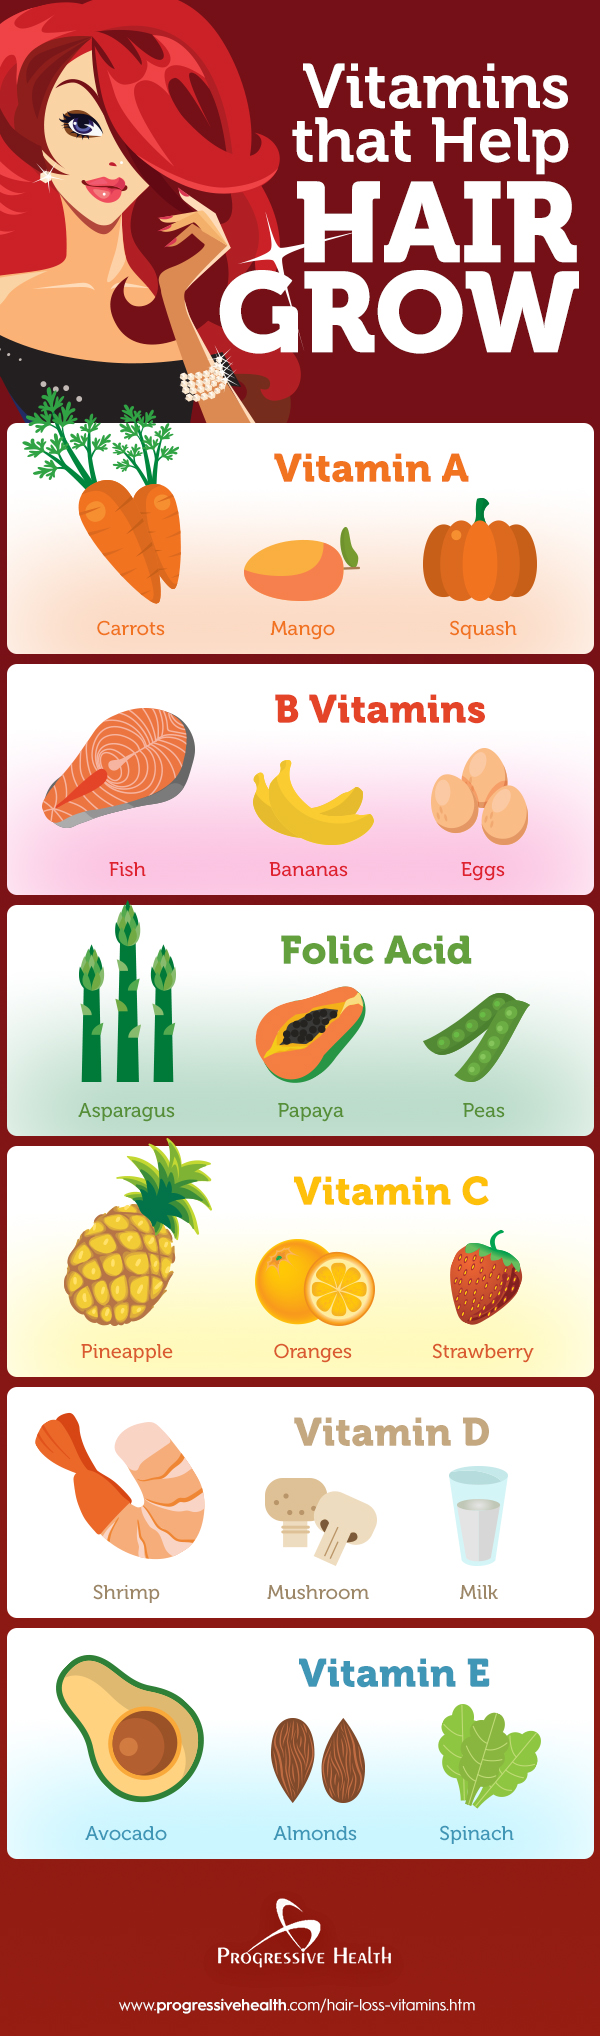 Infographic for Vitamins that help with hair growth